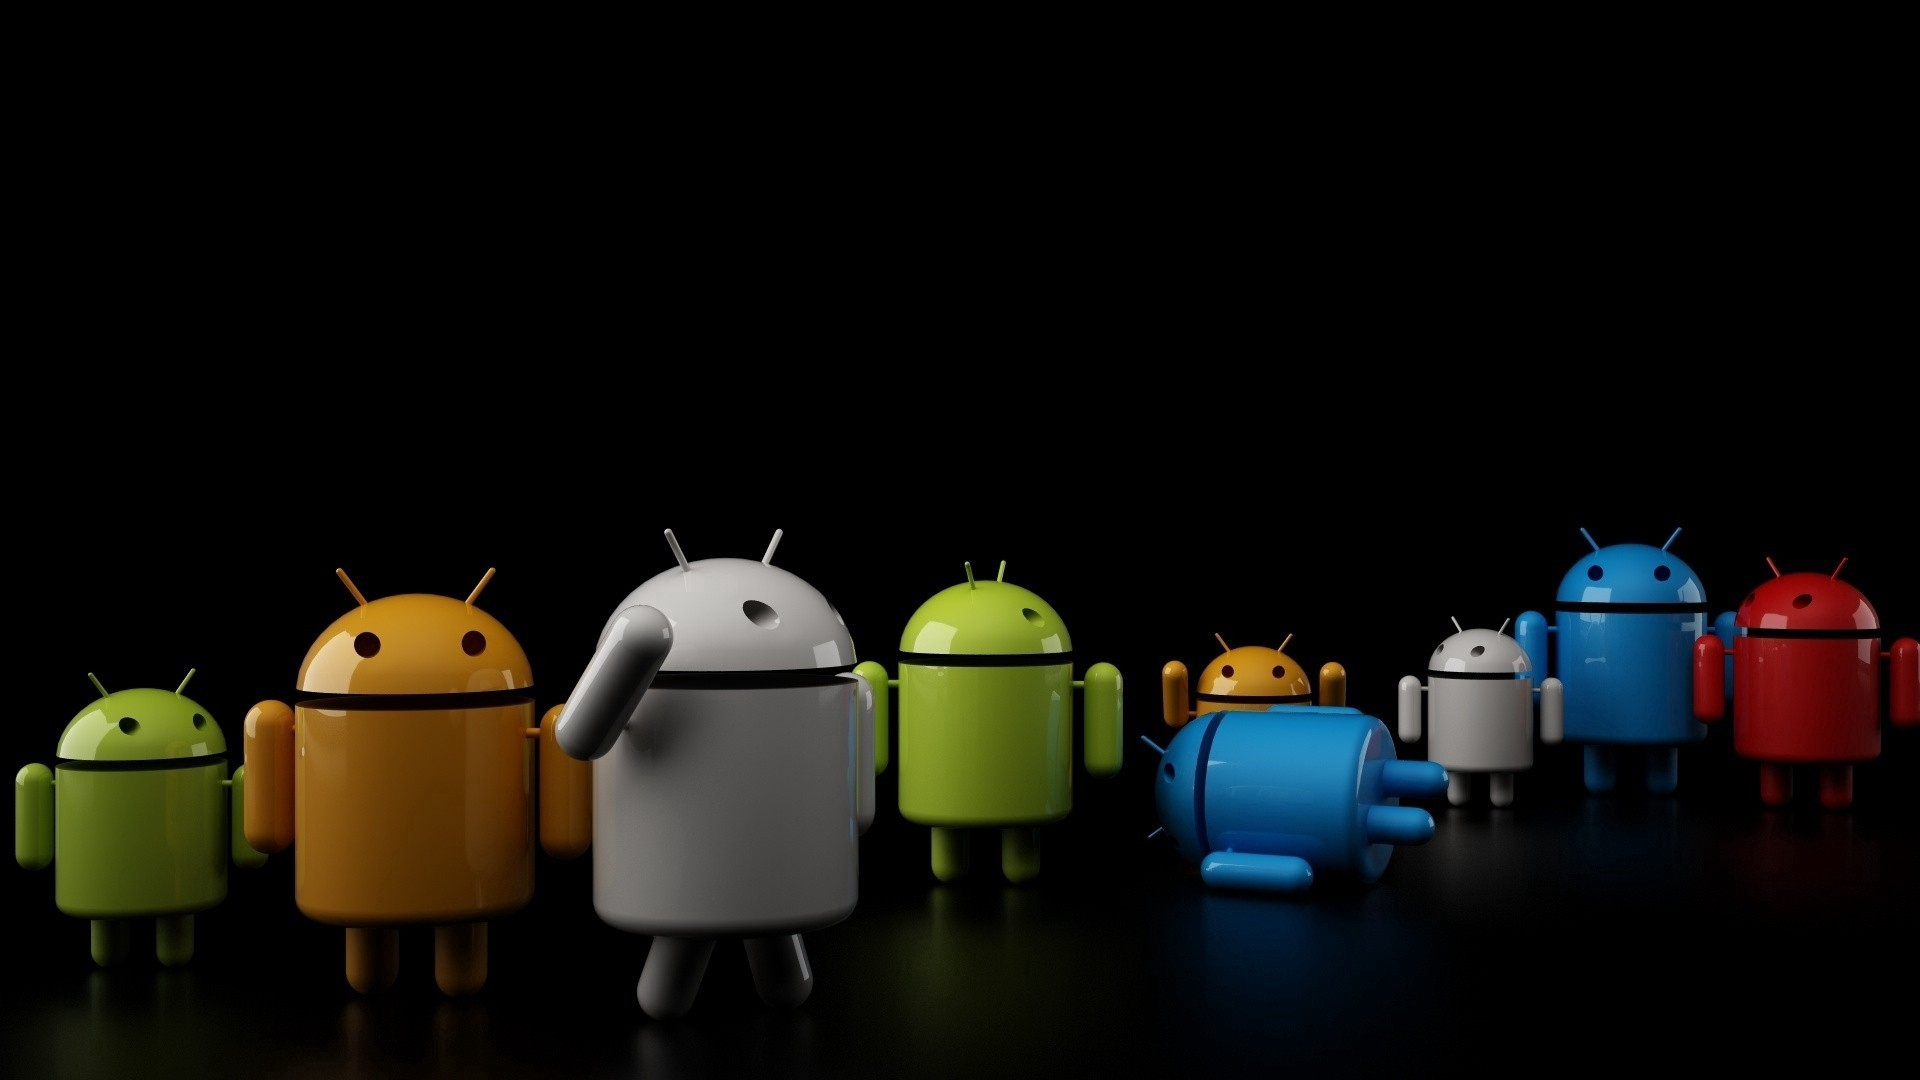 Android Remote Logging collecting remote device logs without libraries or third